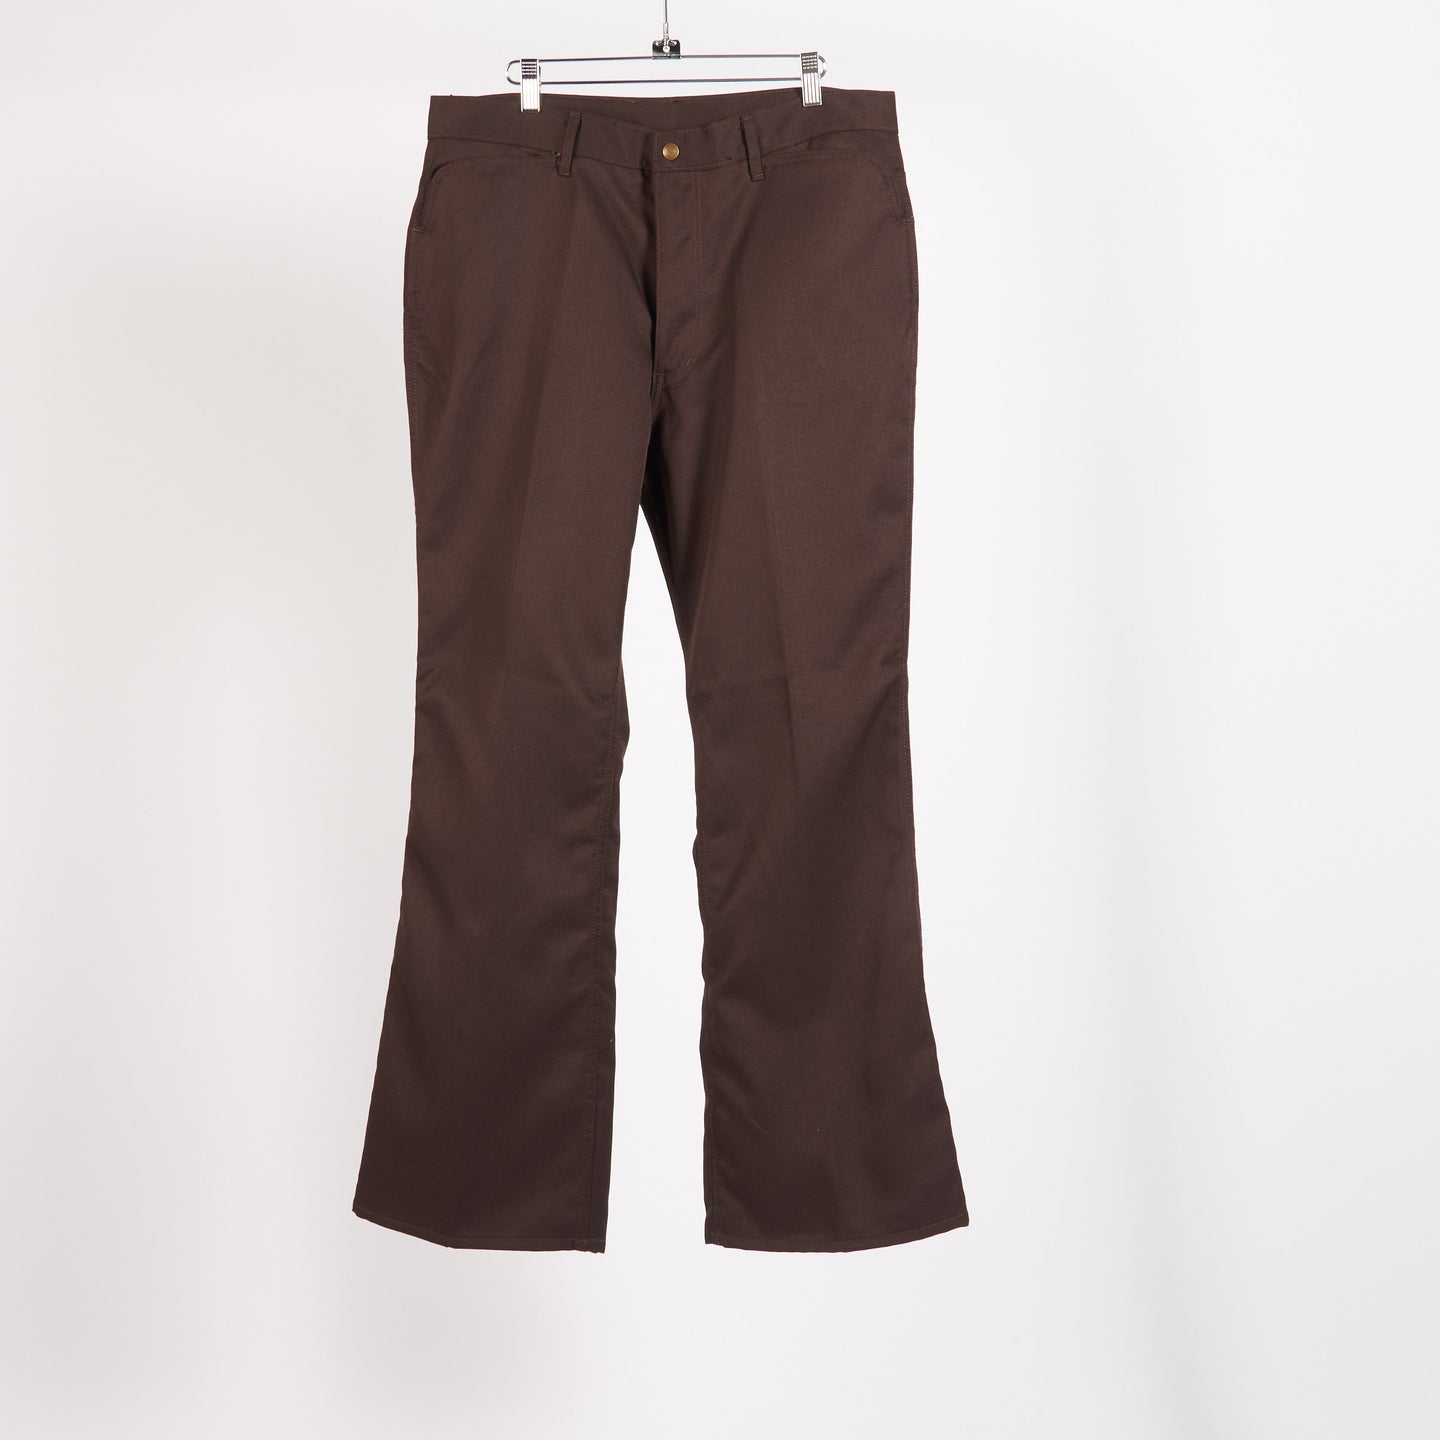 Brown Boot-Cut Jeans (Size L, XL)